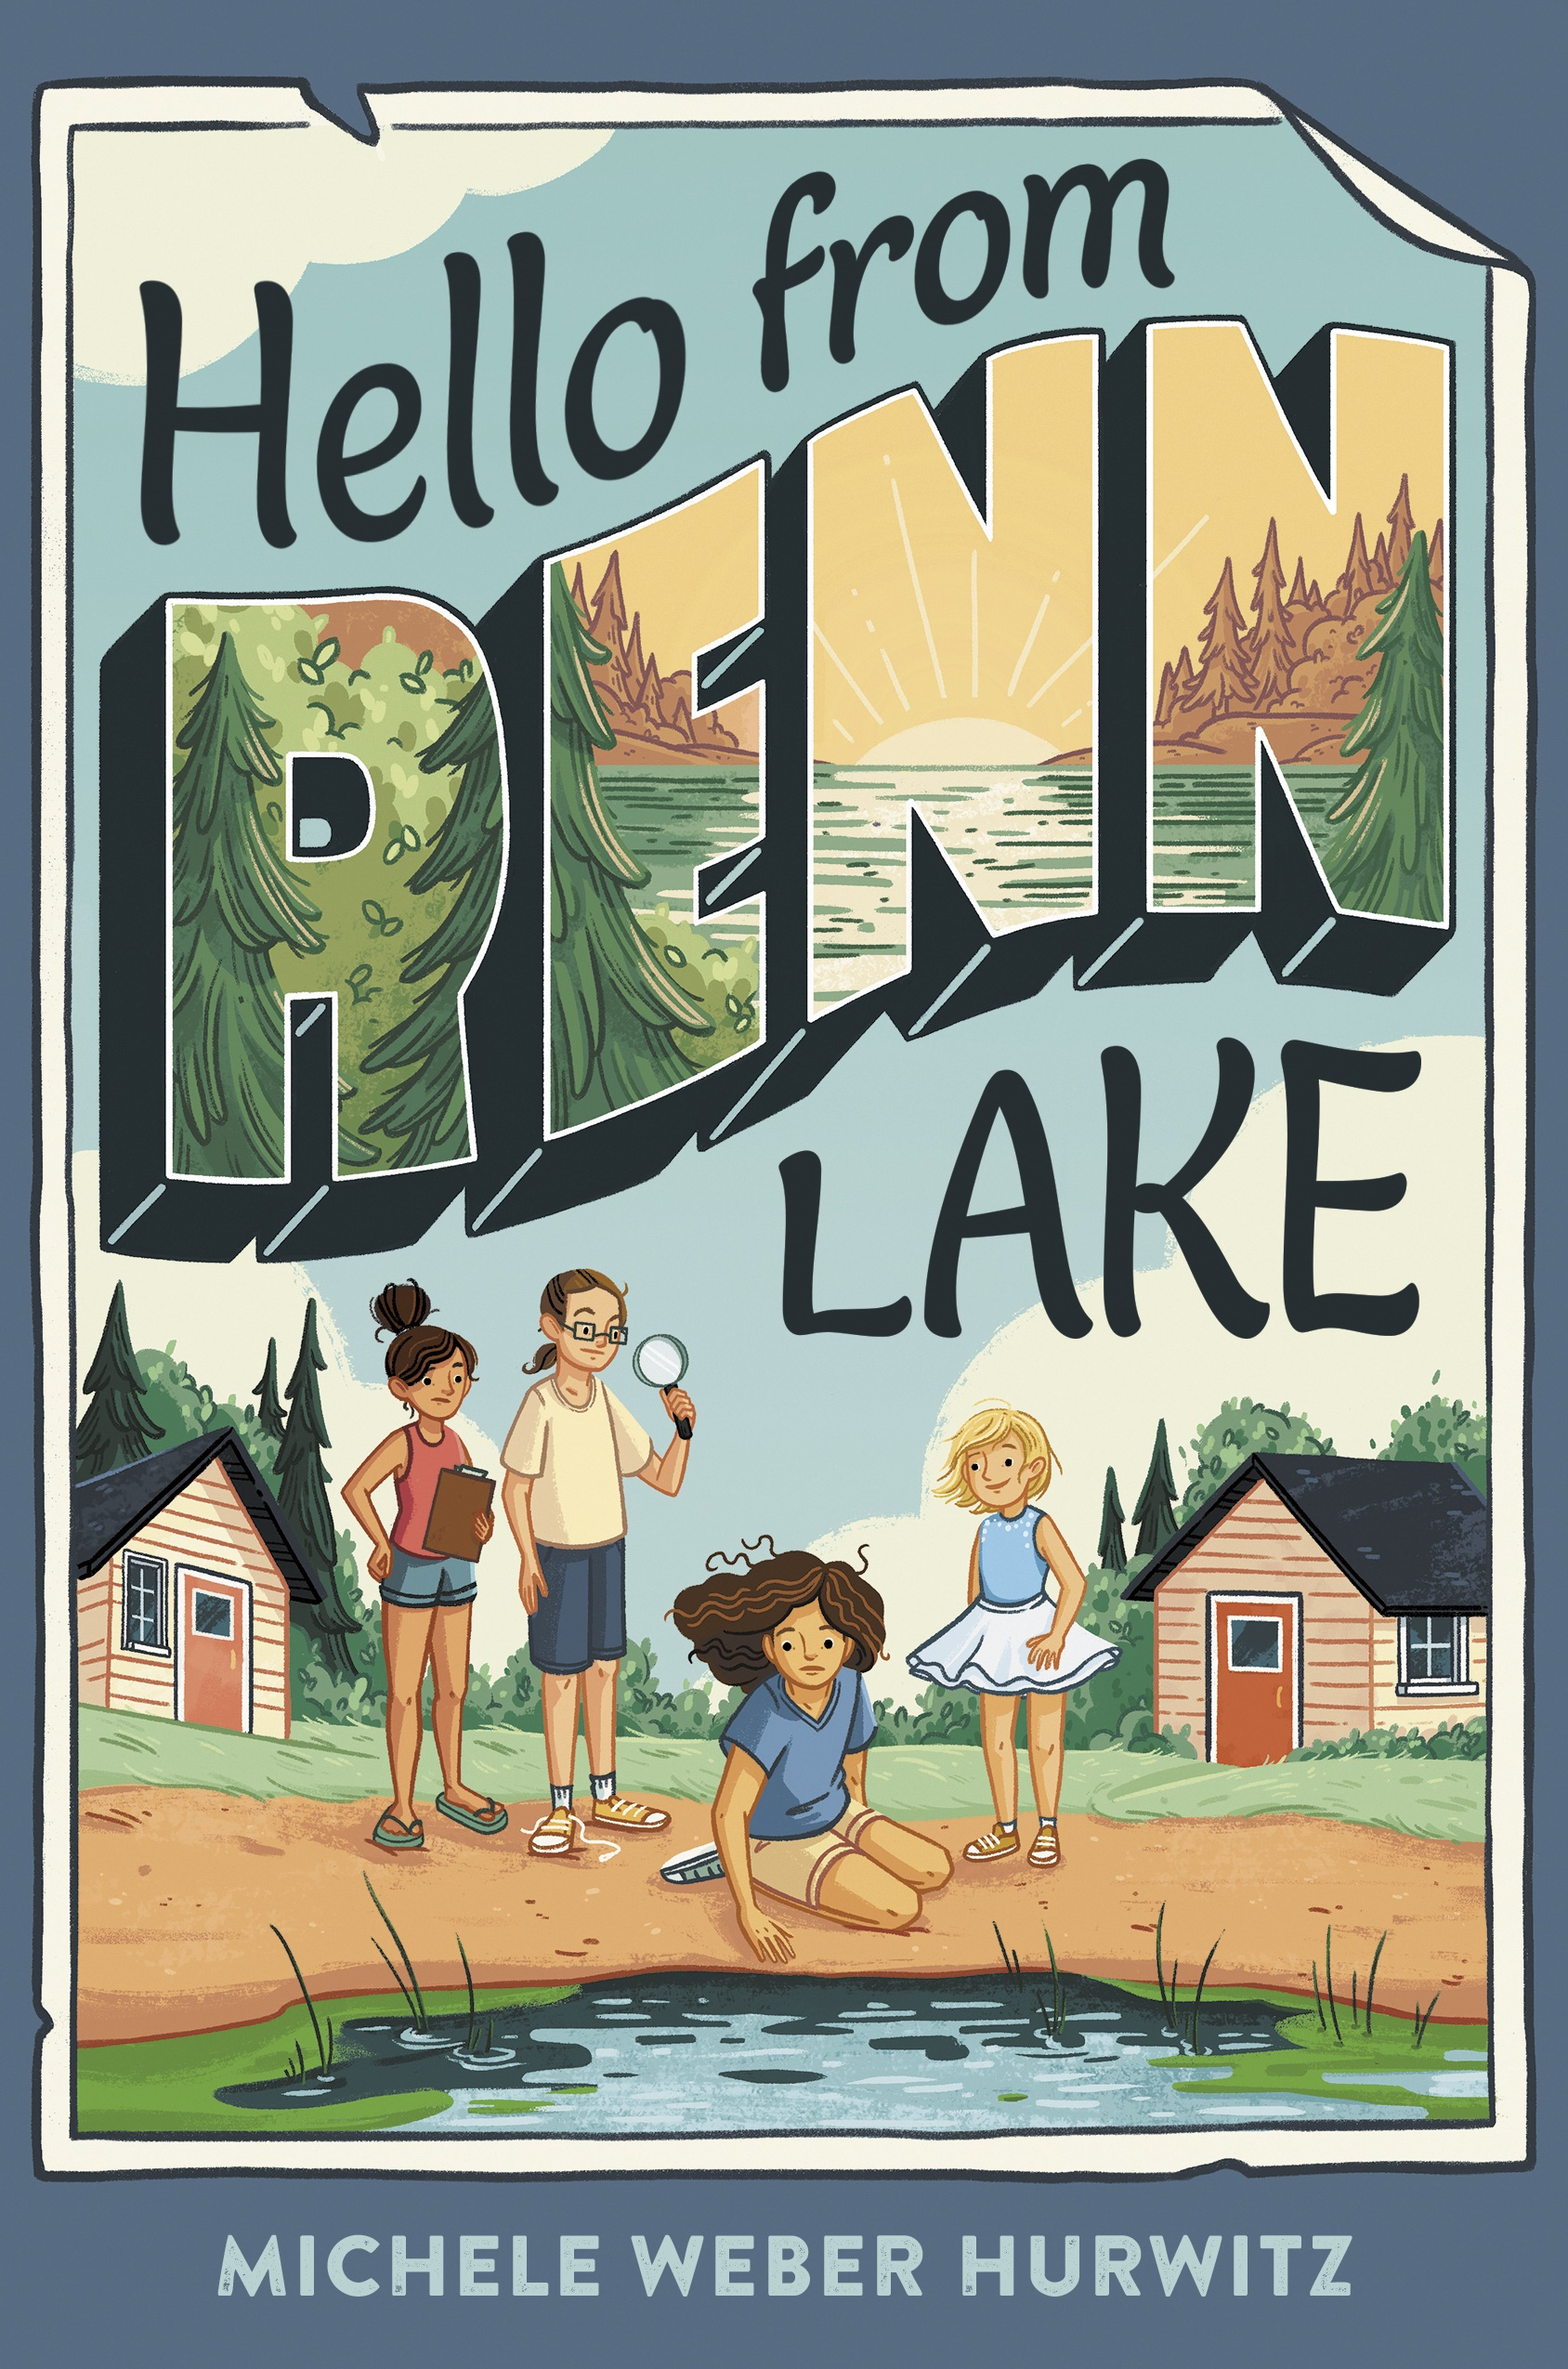 Middle Grade Author Michele Weber Hurwitz tackles an environmental mystery in her latest book, Hello from Renn Lake